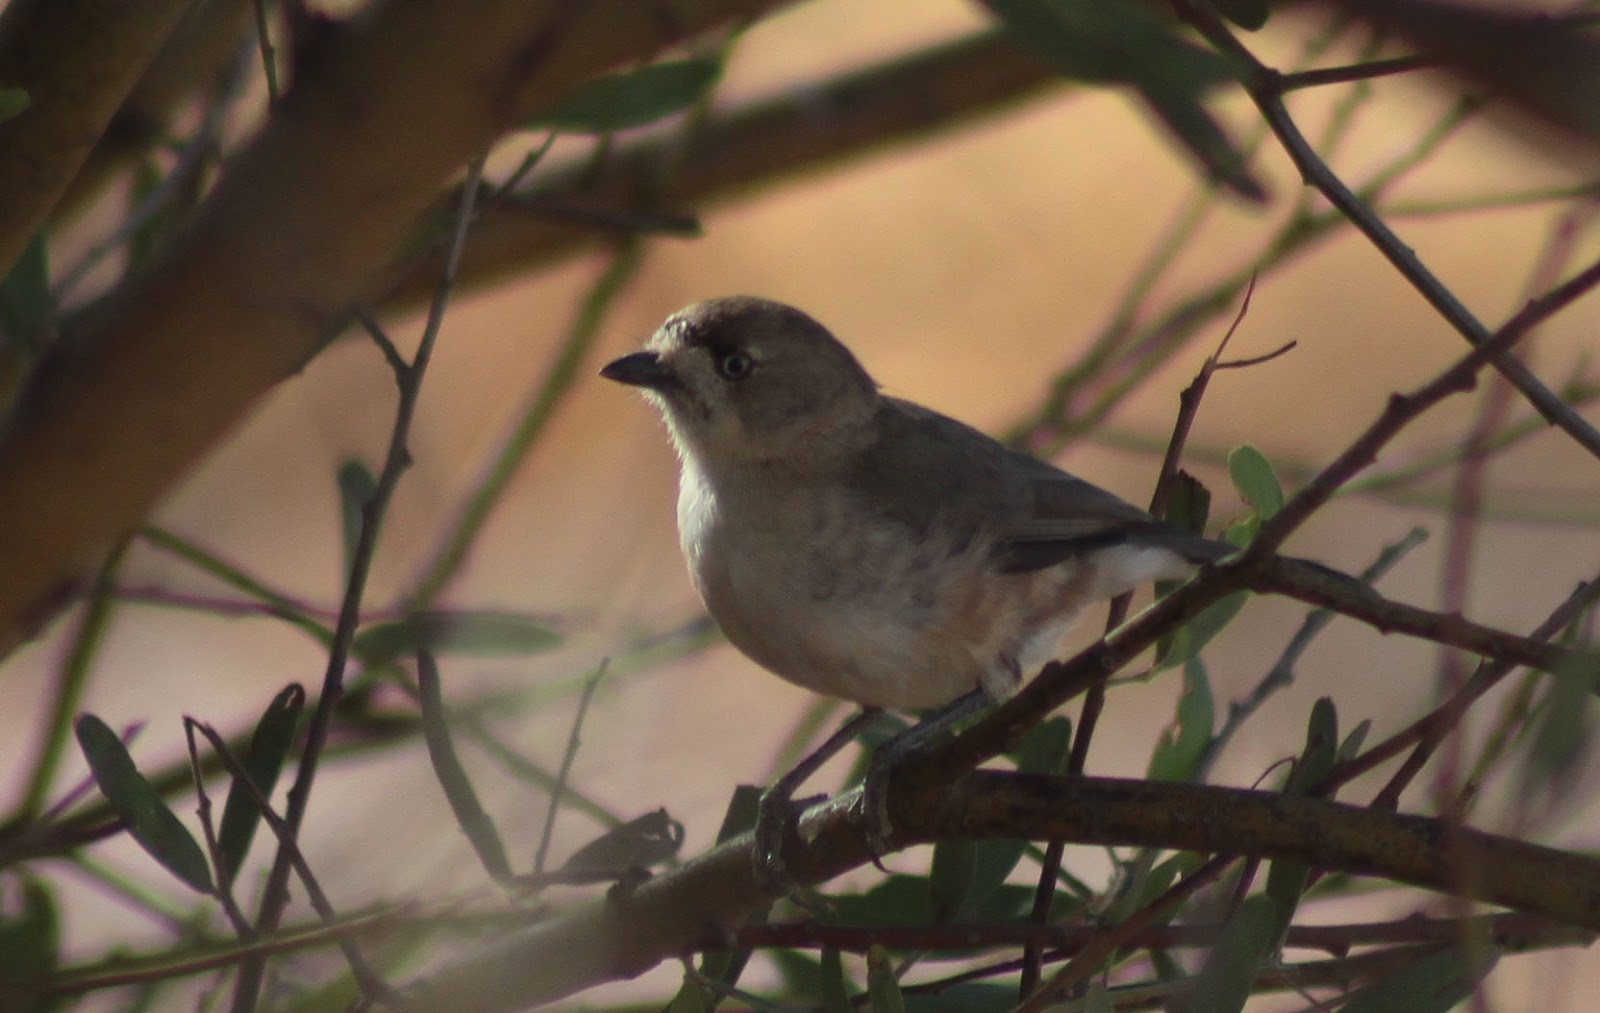 Richard Warings Birds Of Australia Southern Whiteface To Greet The